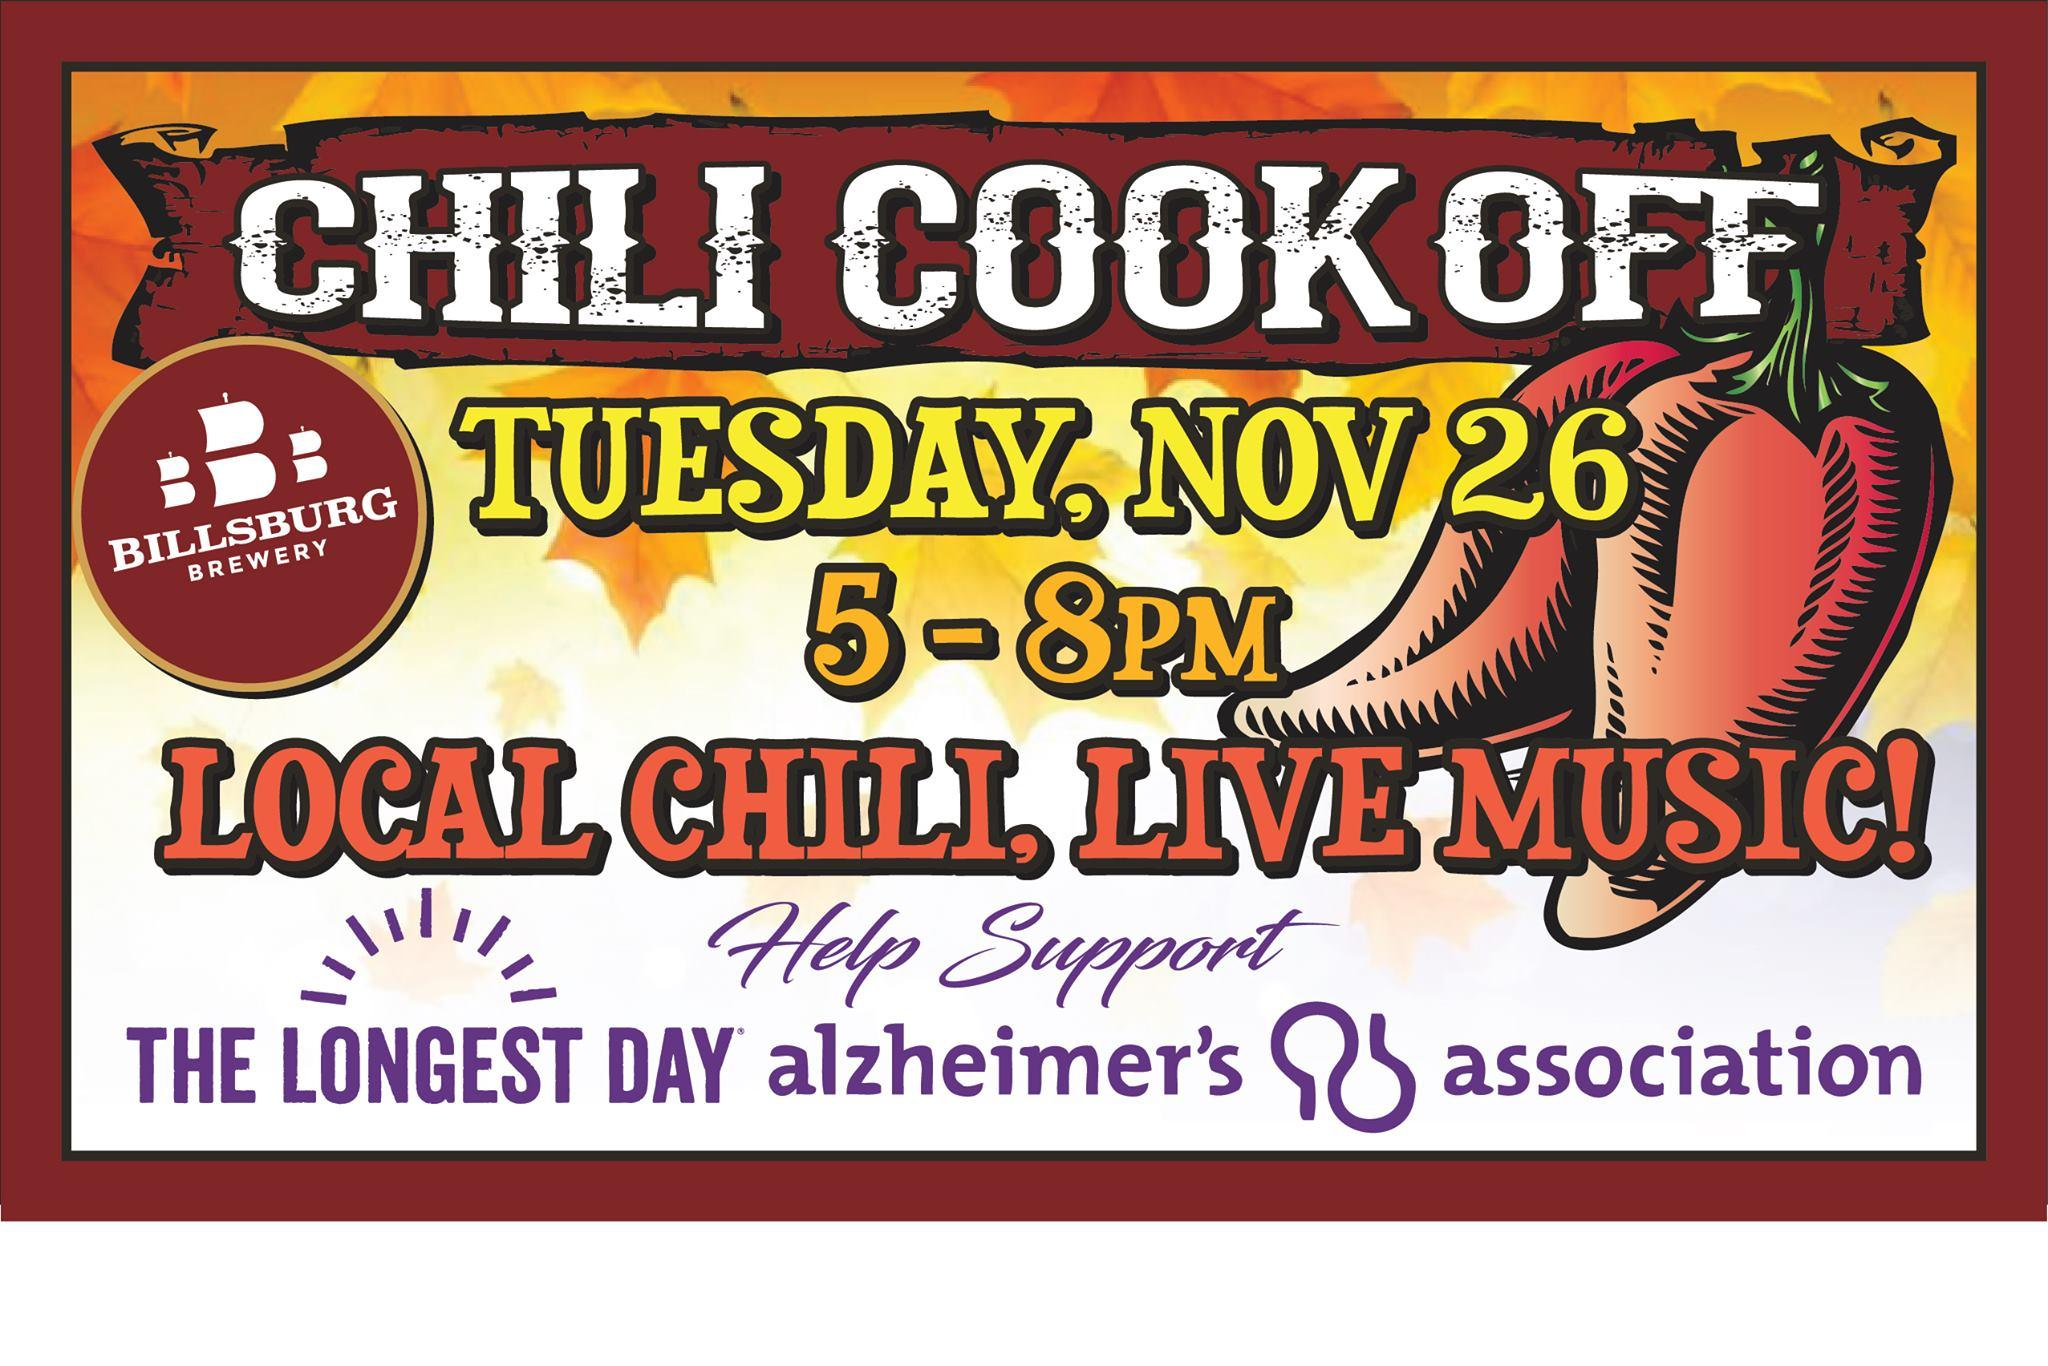 williamsburg virginia things to do chili cook off billsburg alzheimers association 2019